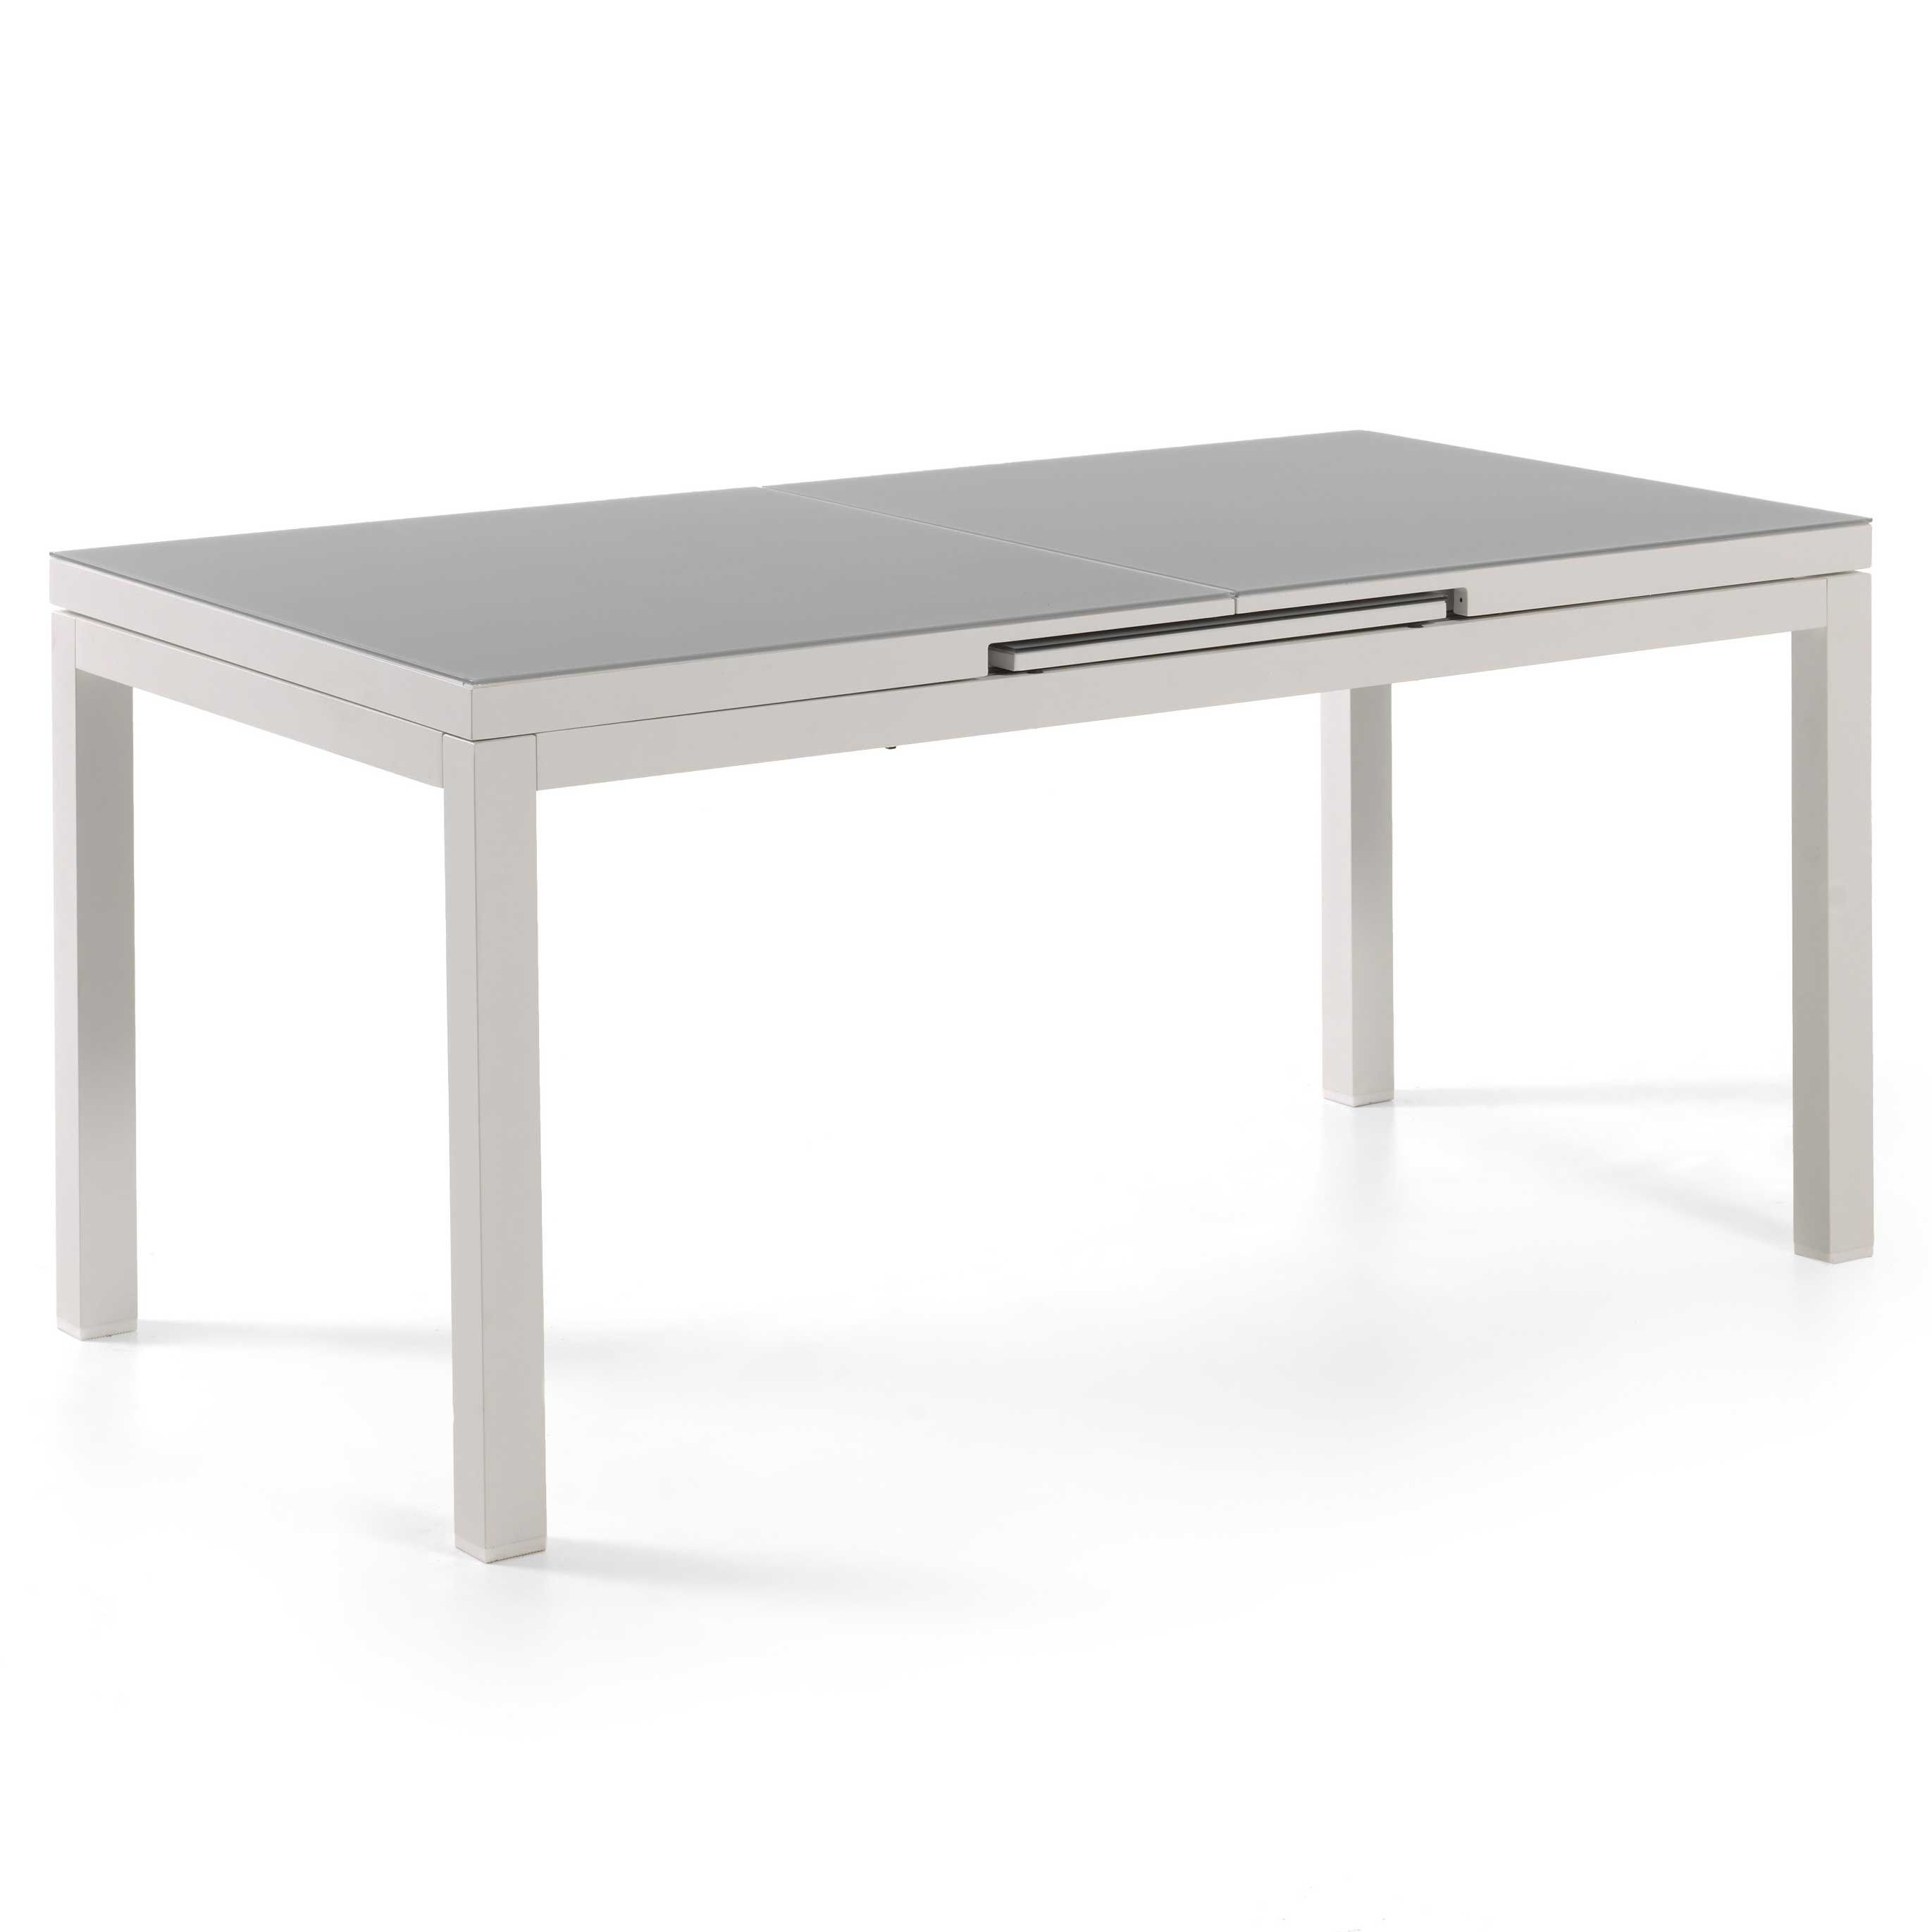 Table de jardin extensible Calvi 220/280 - blanc/gris